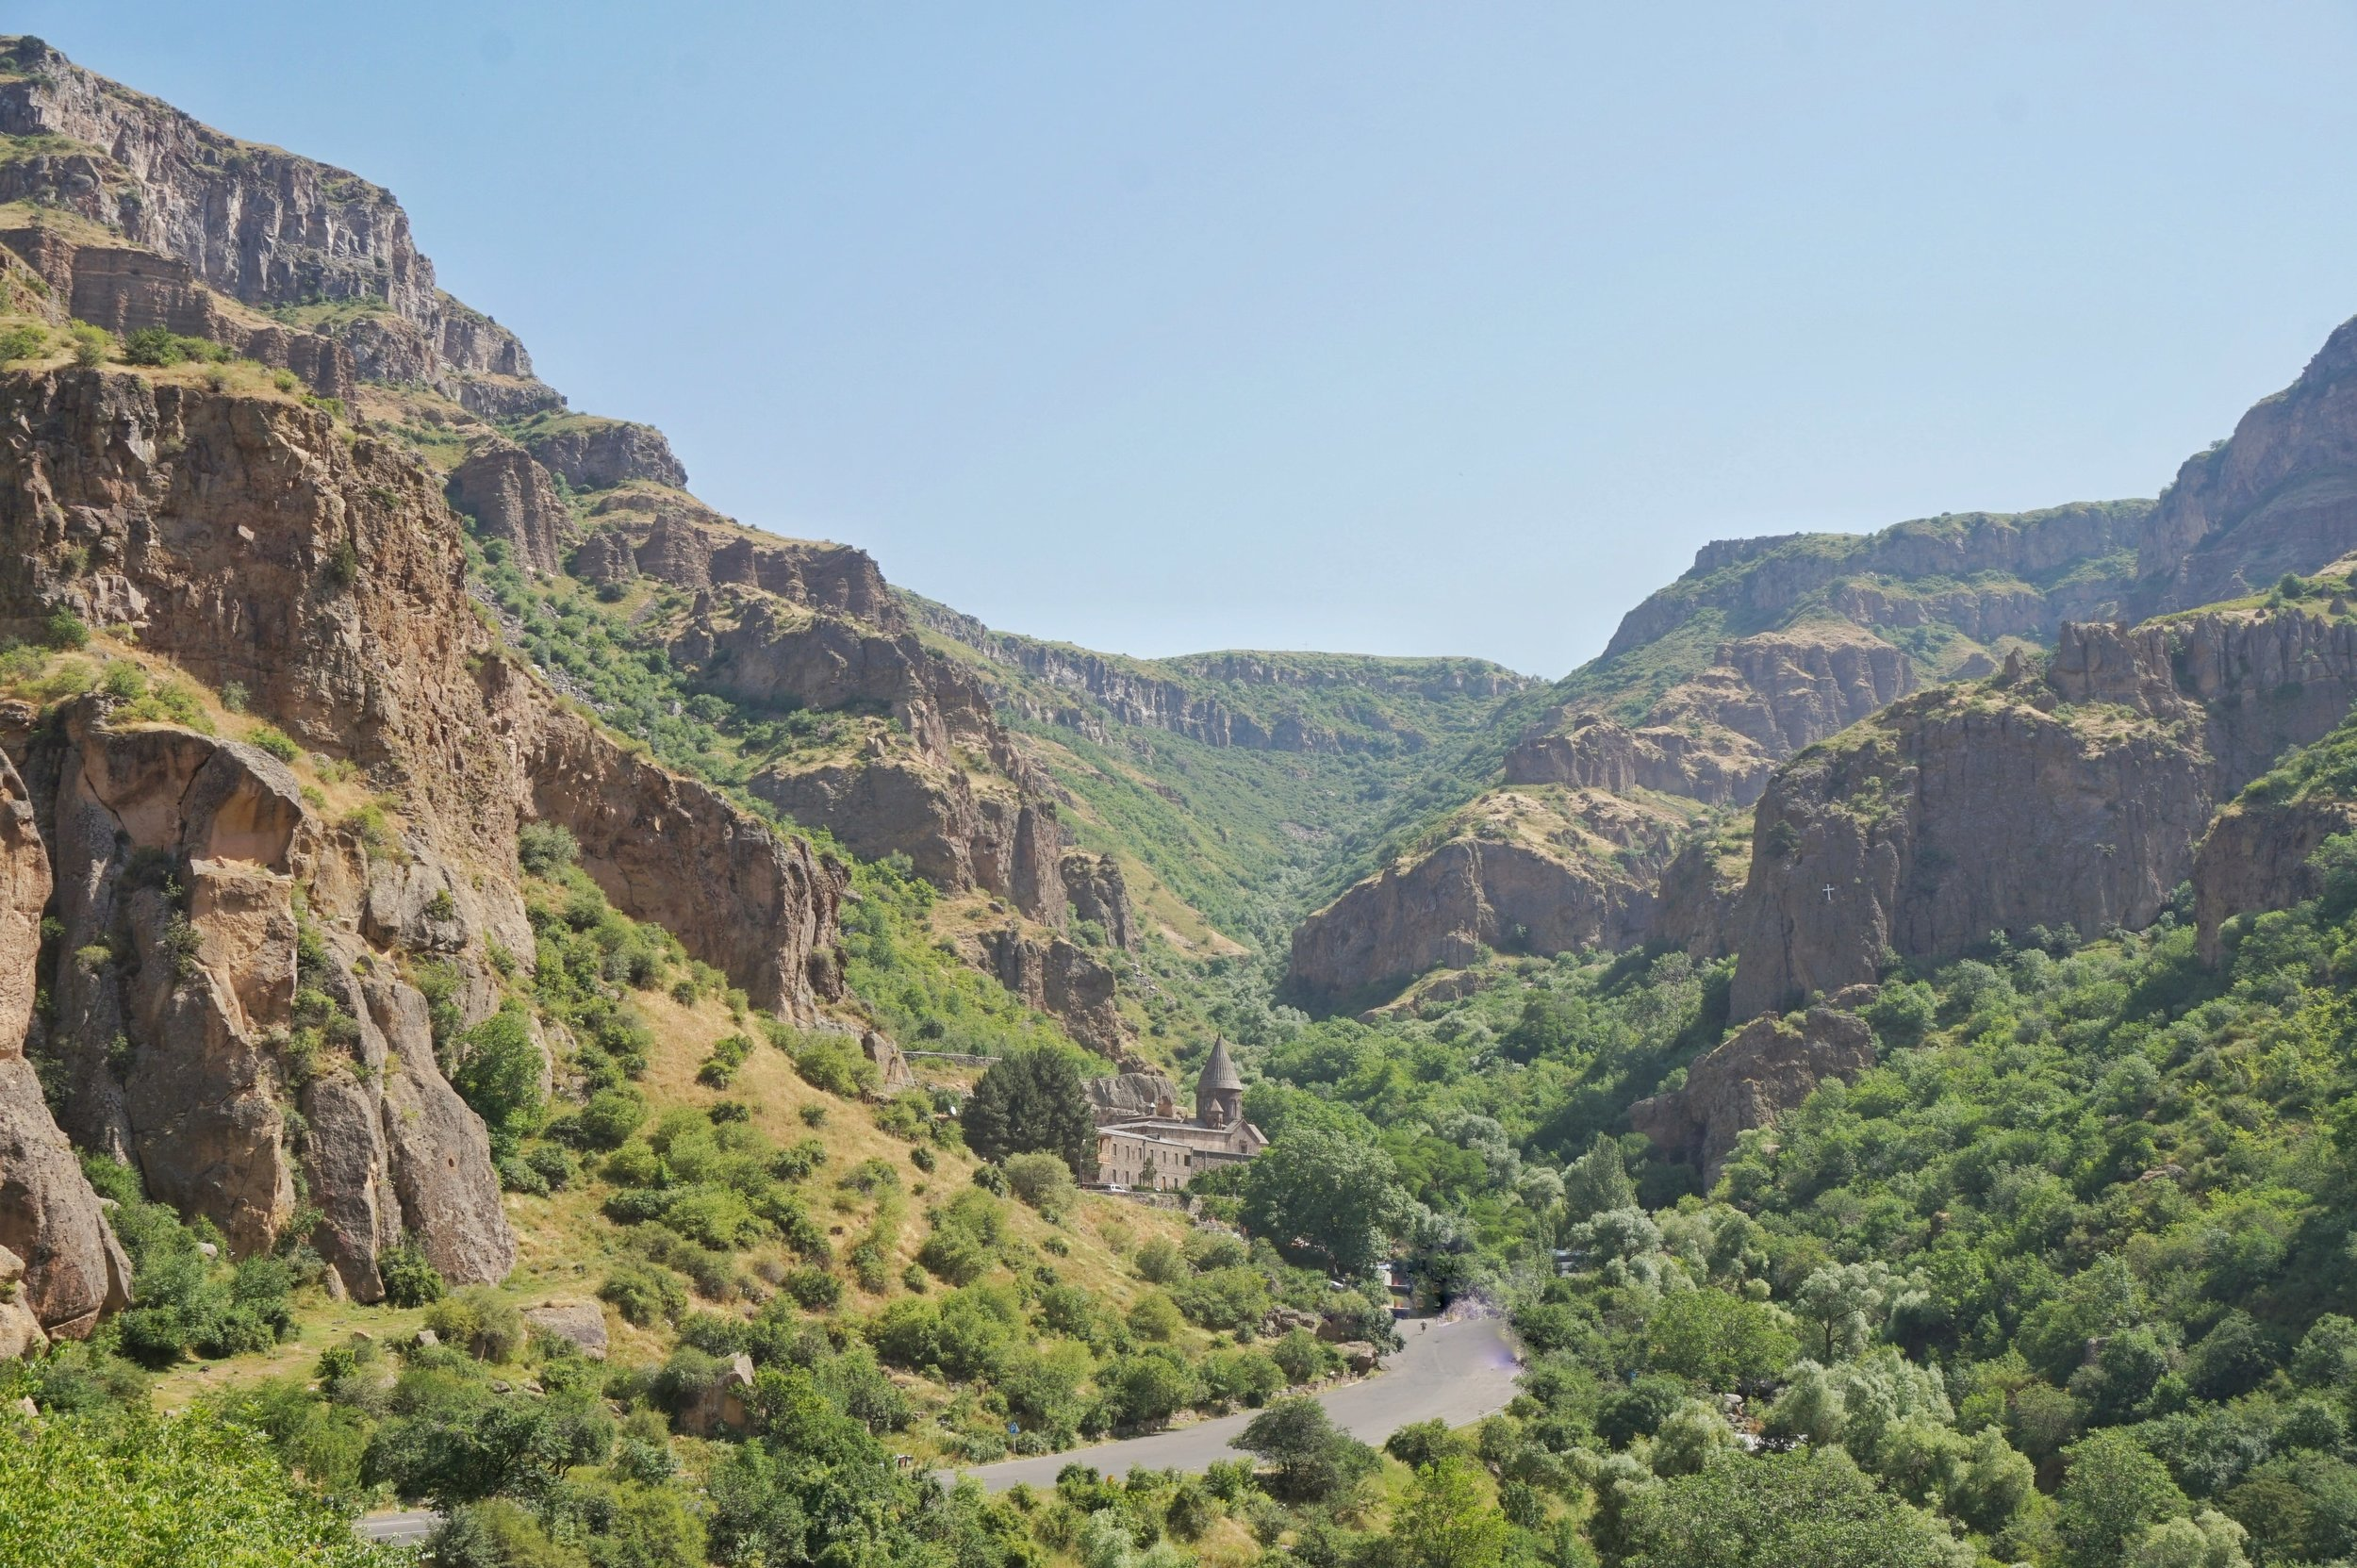 One of the best things to do in Armenia is to visit the beautiful valley with the Geghard Monastery.